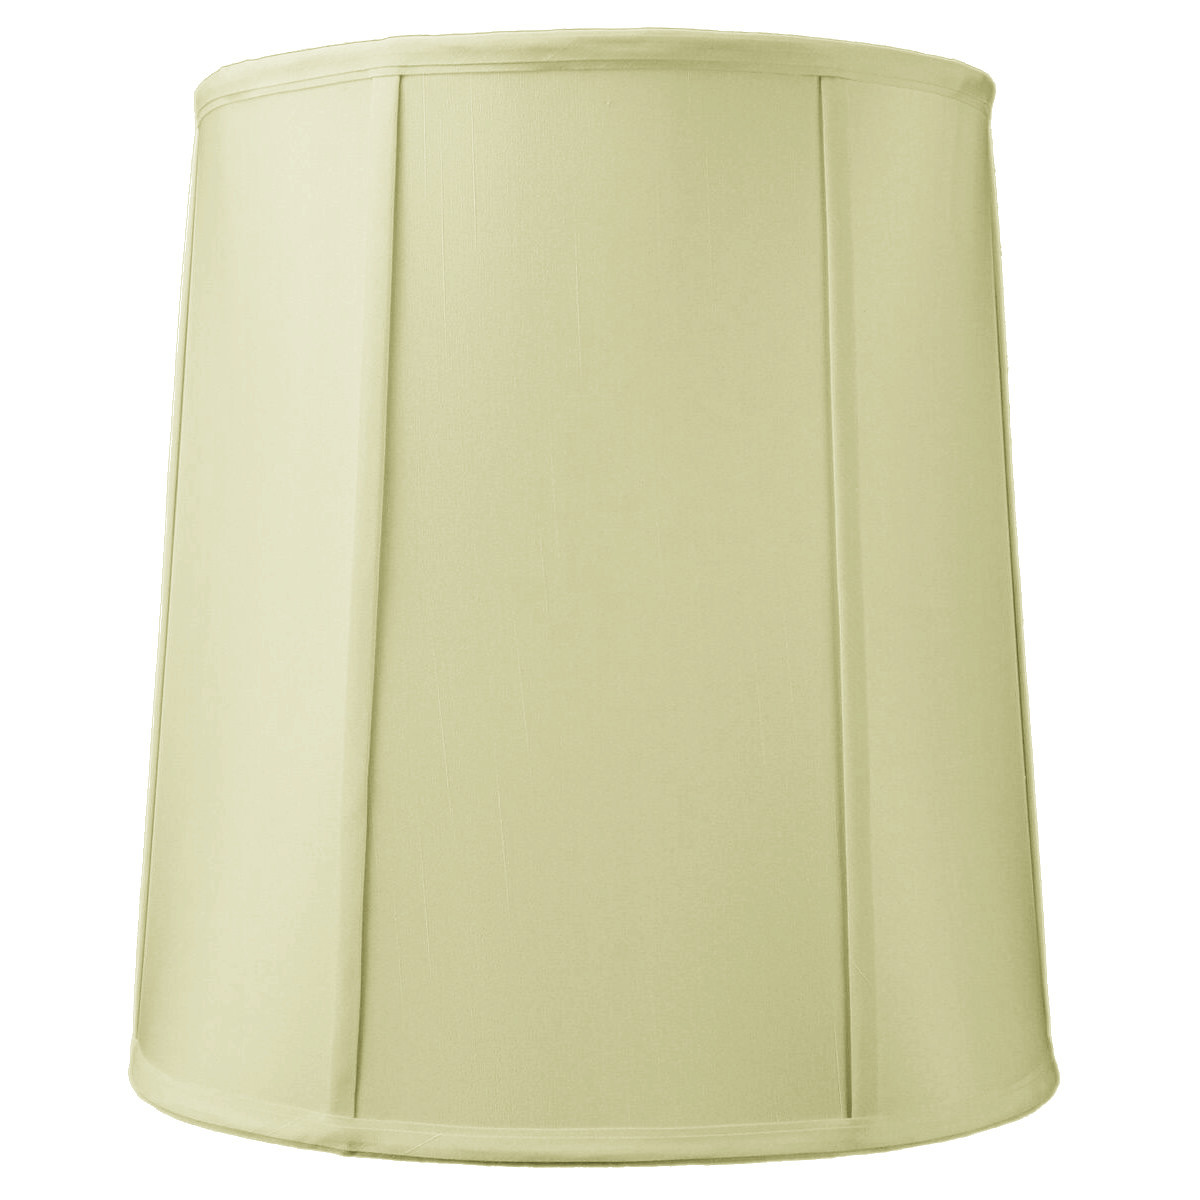 12x14x15 Drum Lampshade with Piping Eggshell by Home Concept Inc